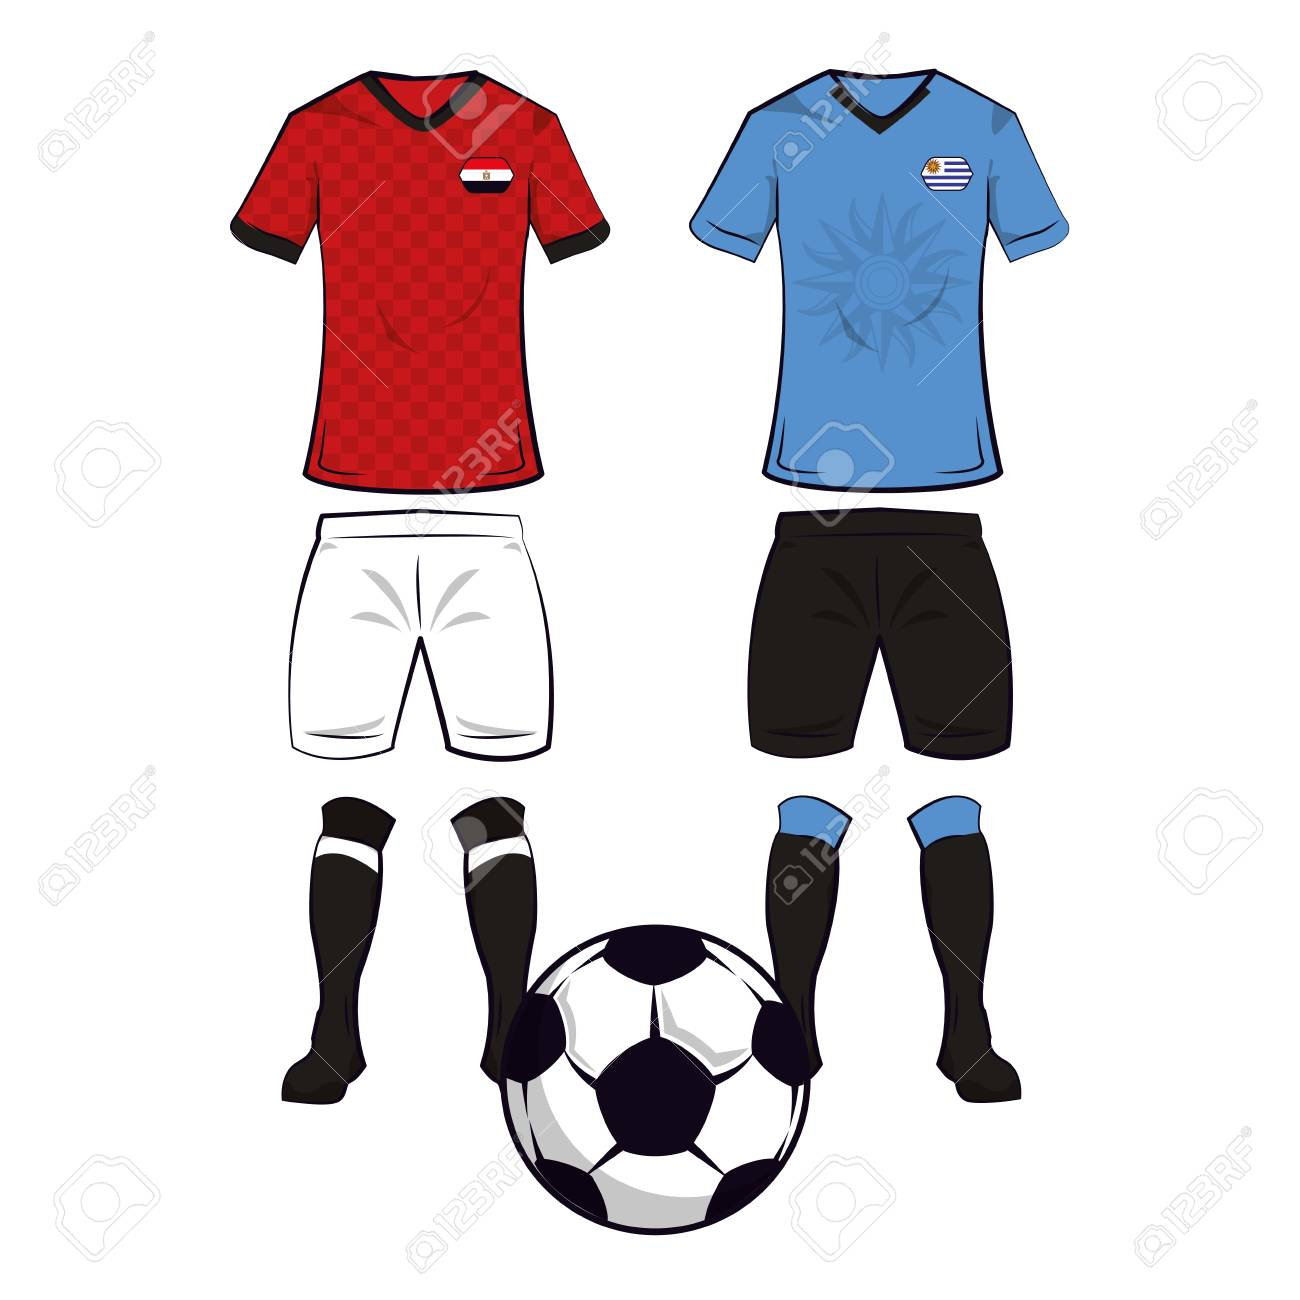 b2429046c8a Soccer egypt and uruguay teams uniforms and ball vector illustration  graphic design Stock Vector - 109593026